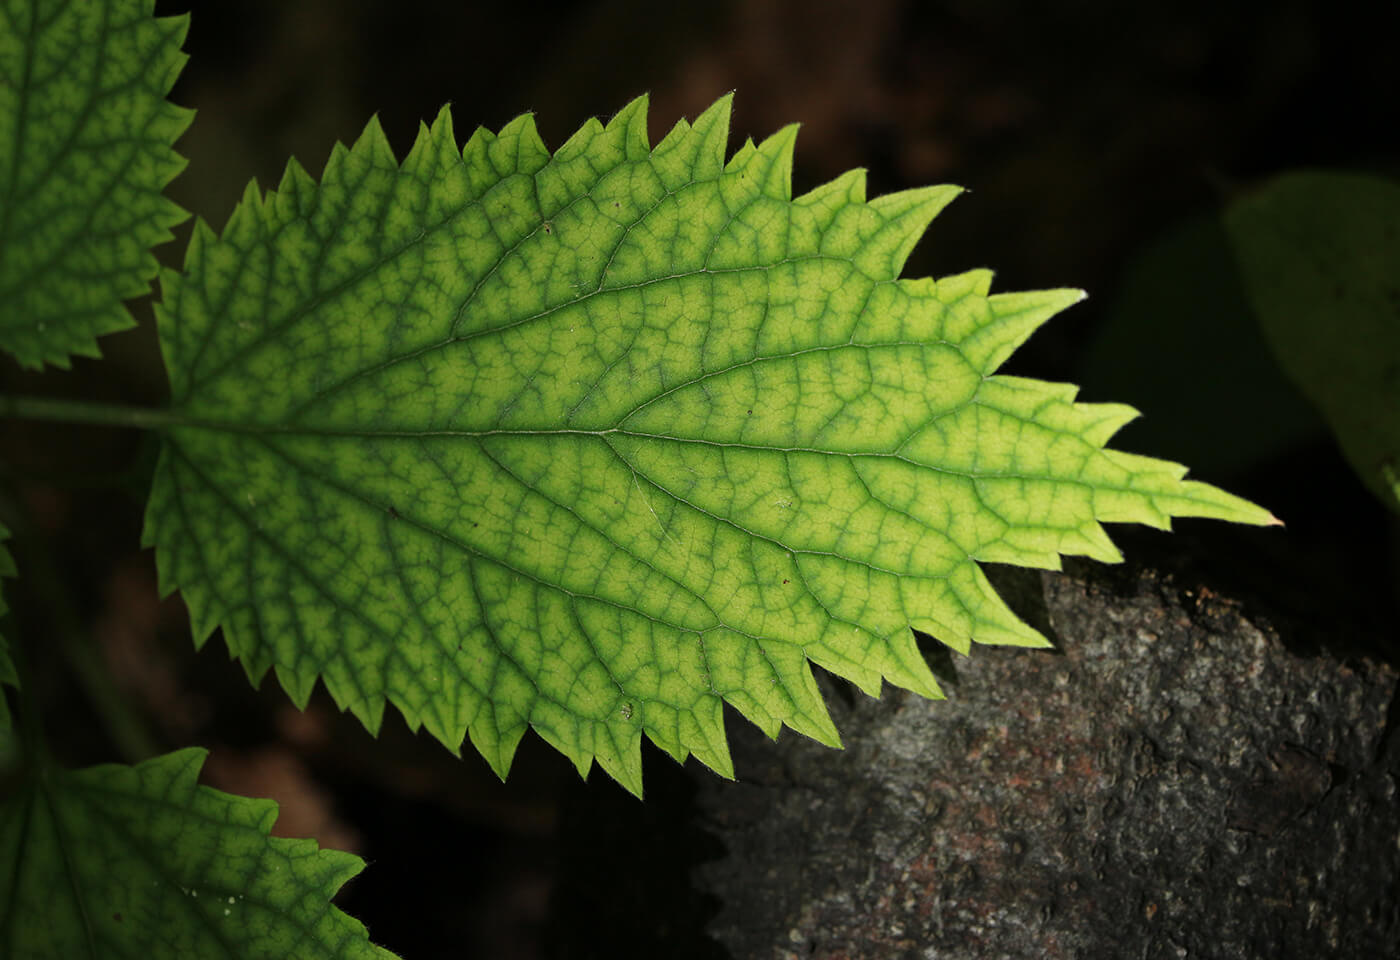 Image of leaf captured by Canon Camera with EF-S 55-350mm f/4-5.6 IS STM lens